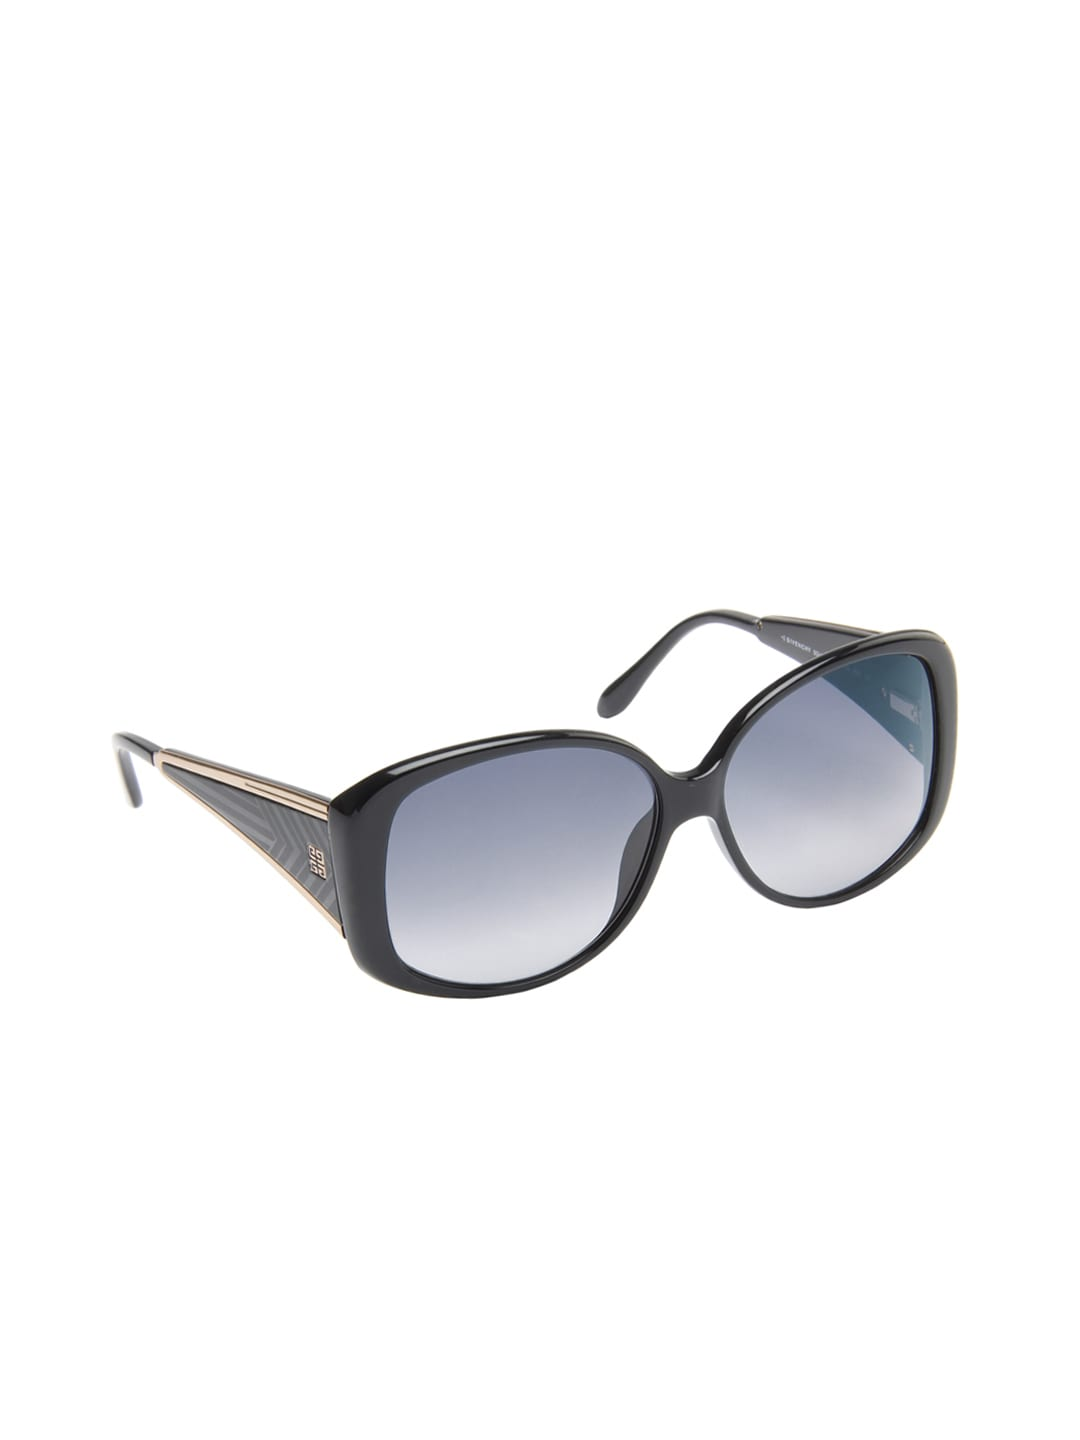 Givenchy Givenchy Women Sunglasses SGV 720 COL 700X (Multicolor)